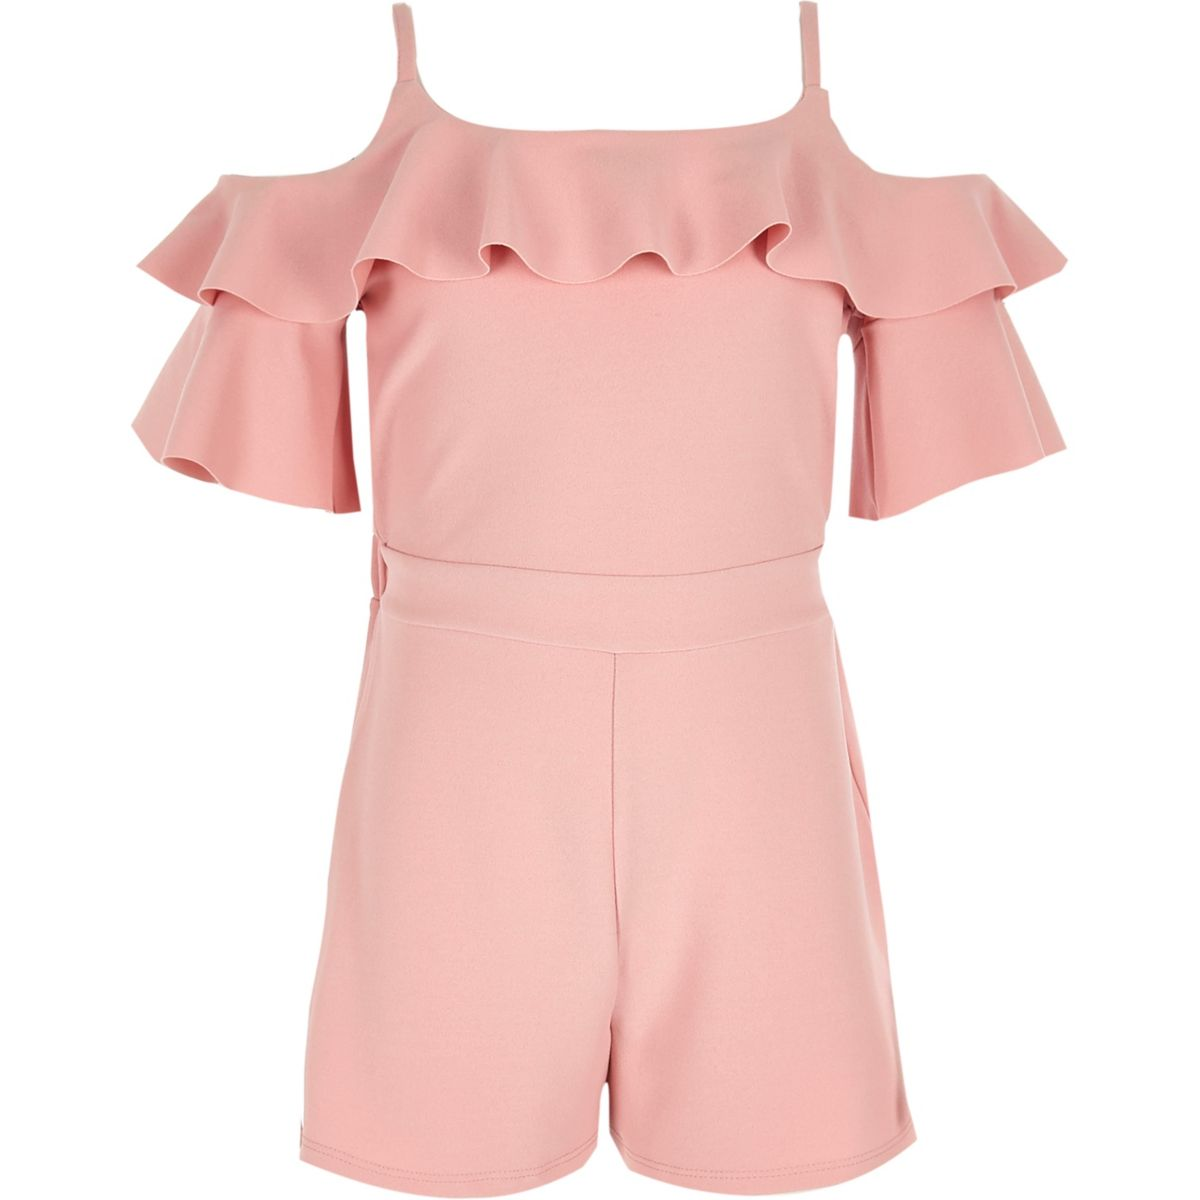 Girls pink cold shoulder ruffle romper